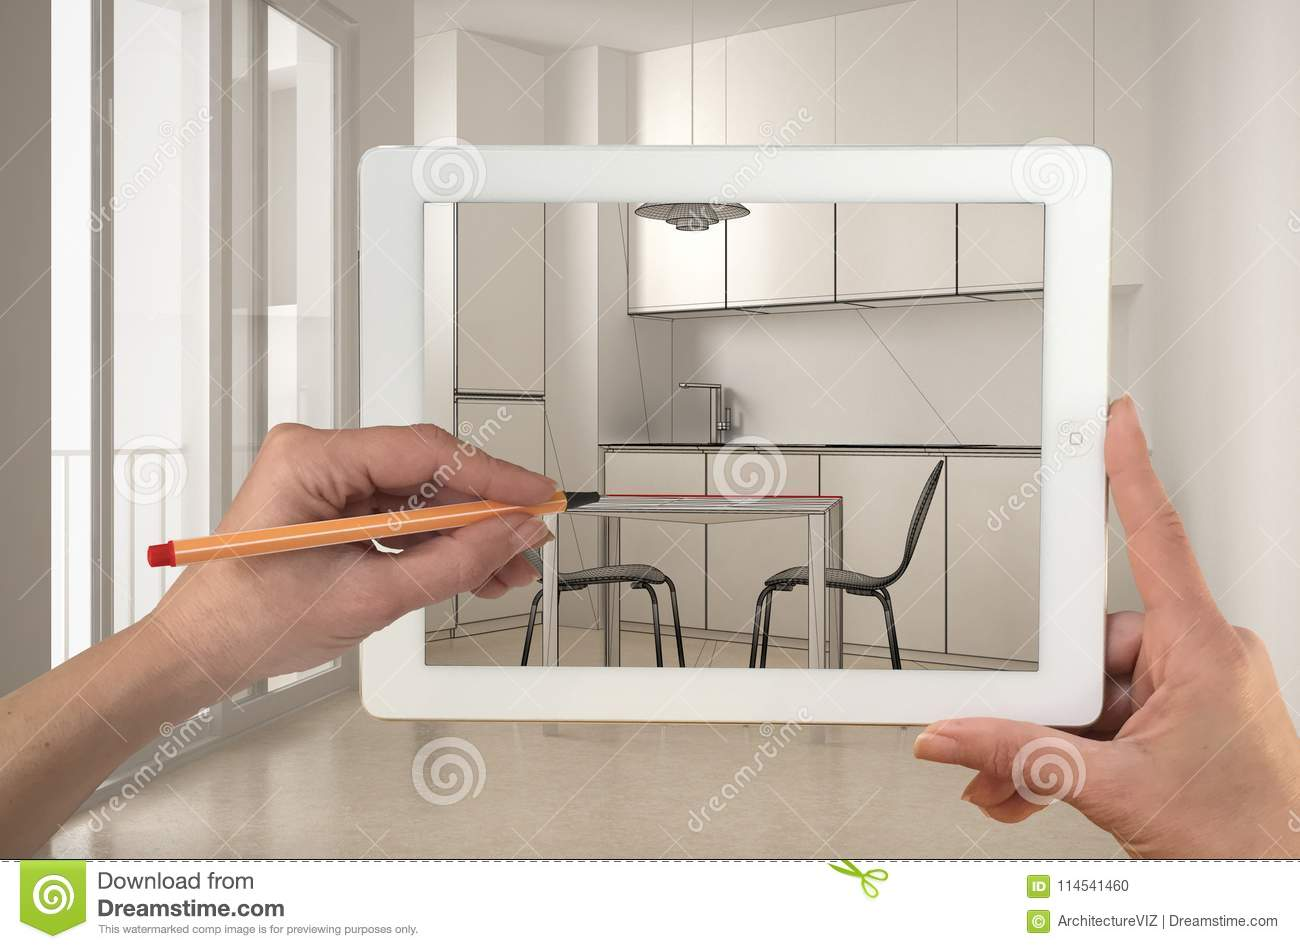 Hands holding and drawing on tablet showing real finished minimalist white kitchen. Modern kitchen in the background, architecture